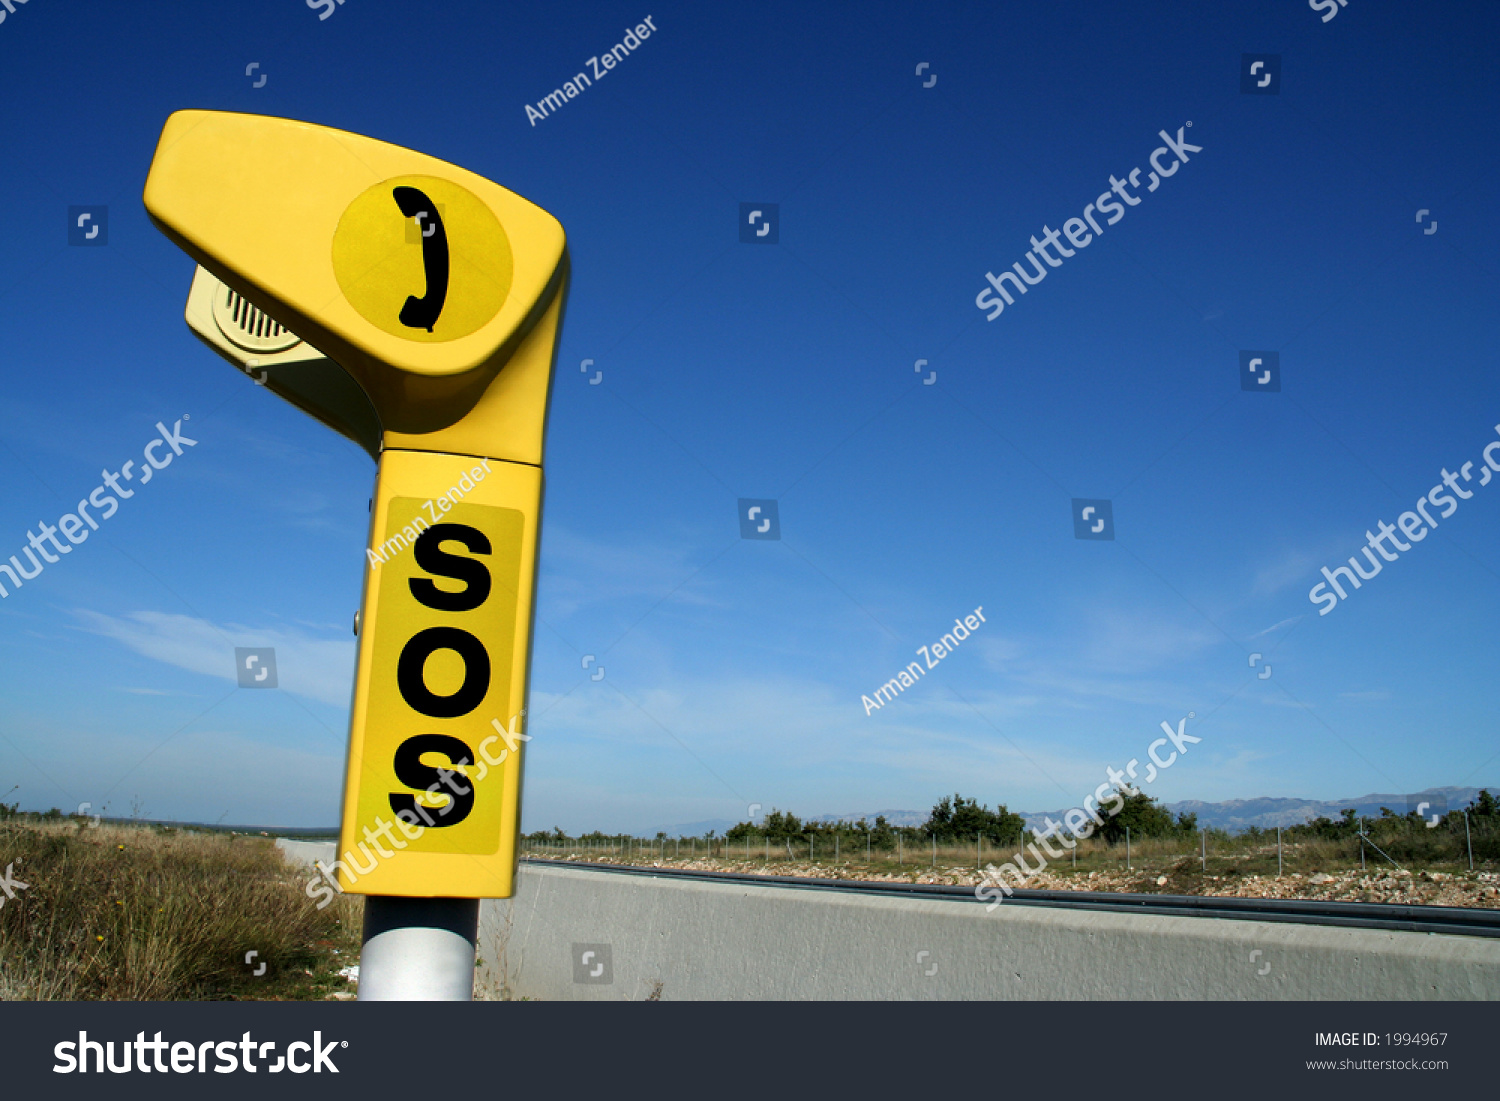 yellow sos phone box at the highway stock photo 1994967 shutterstock. Black Bedroom Furniture Sets. Home Design Ideas